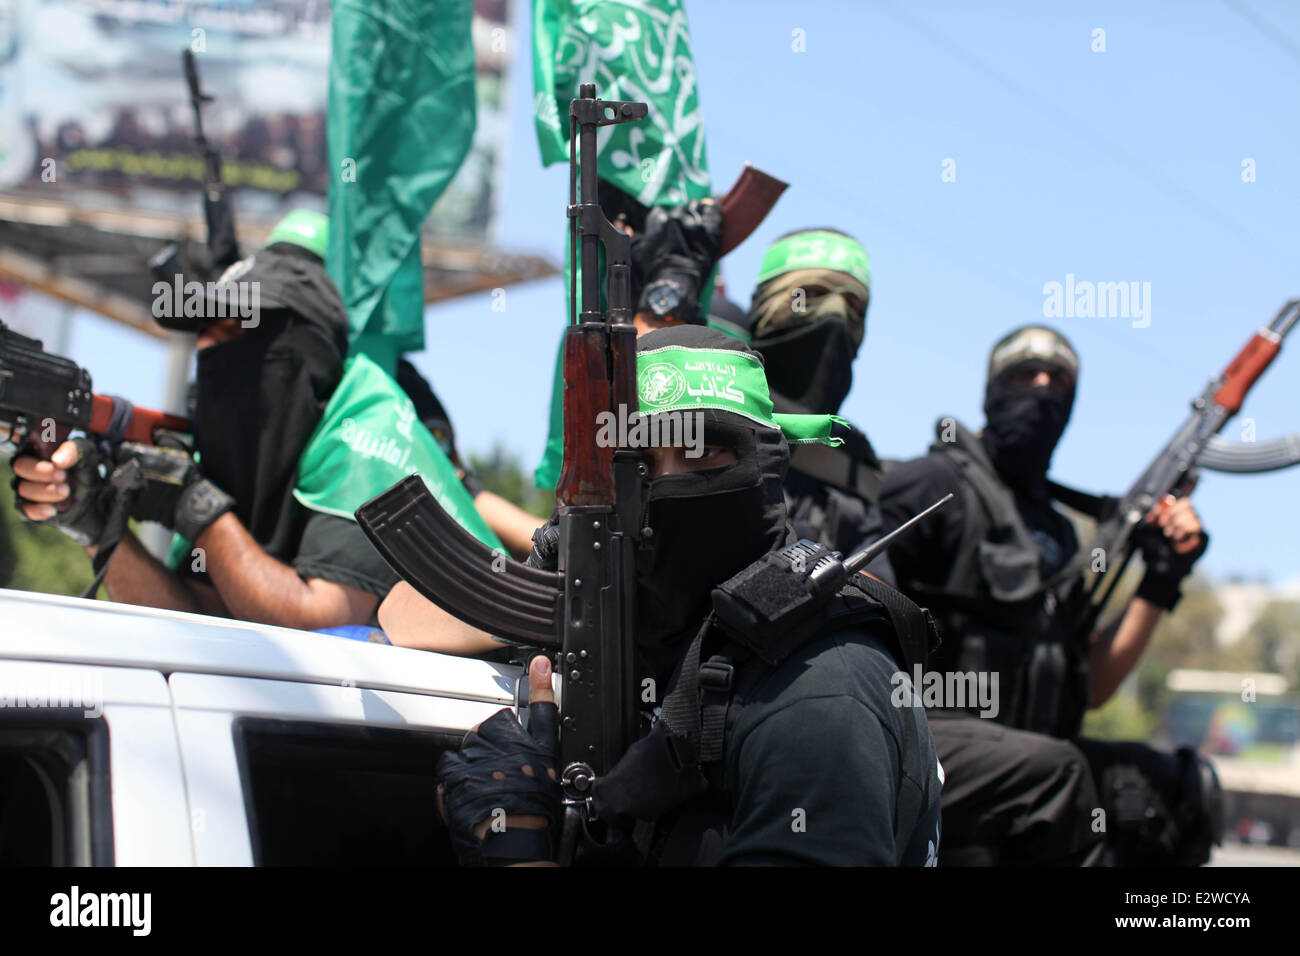 Gaza City, Gaza Strip. 21st June, 2014. Palestinian members of Hamas' armed wing surround the bodies of their - Stock Image